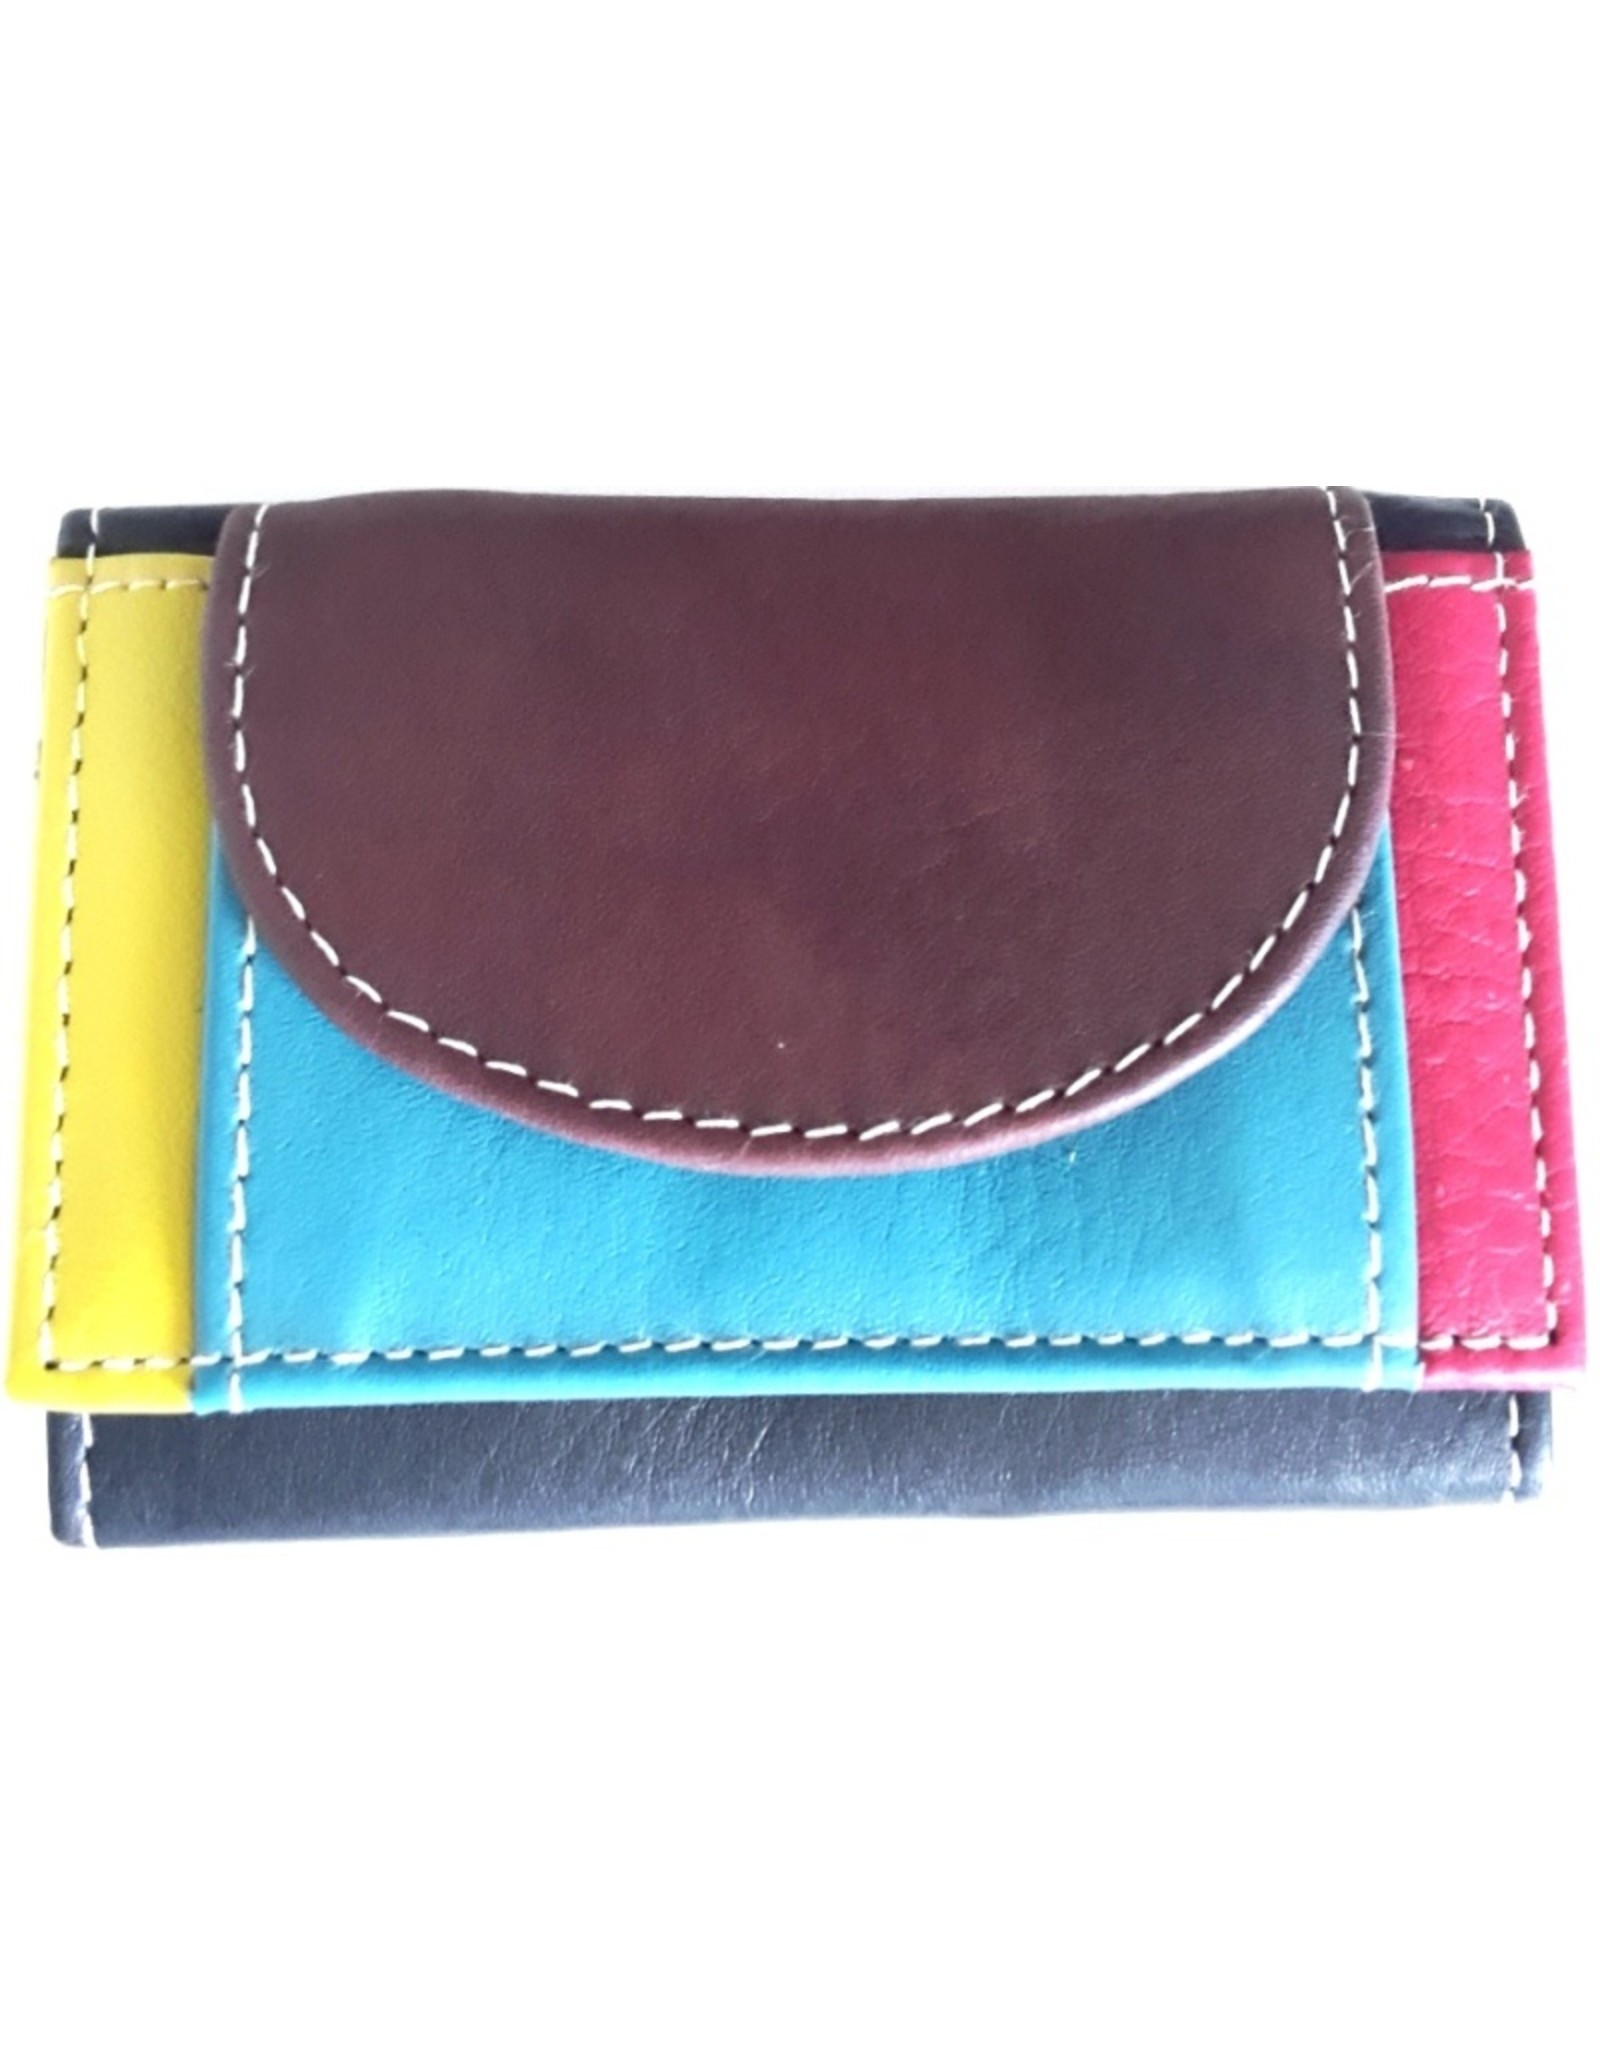 Hutmann Leather Wallets - Leather mini wallet in collored leather